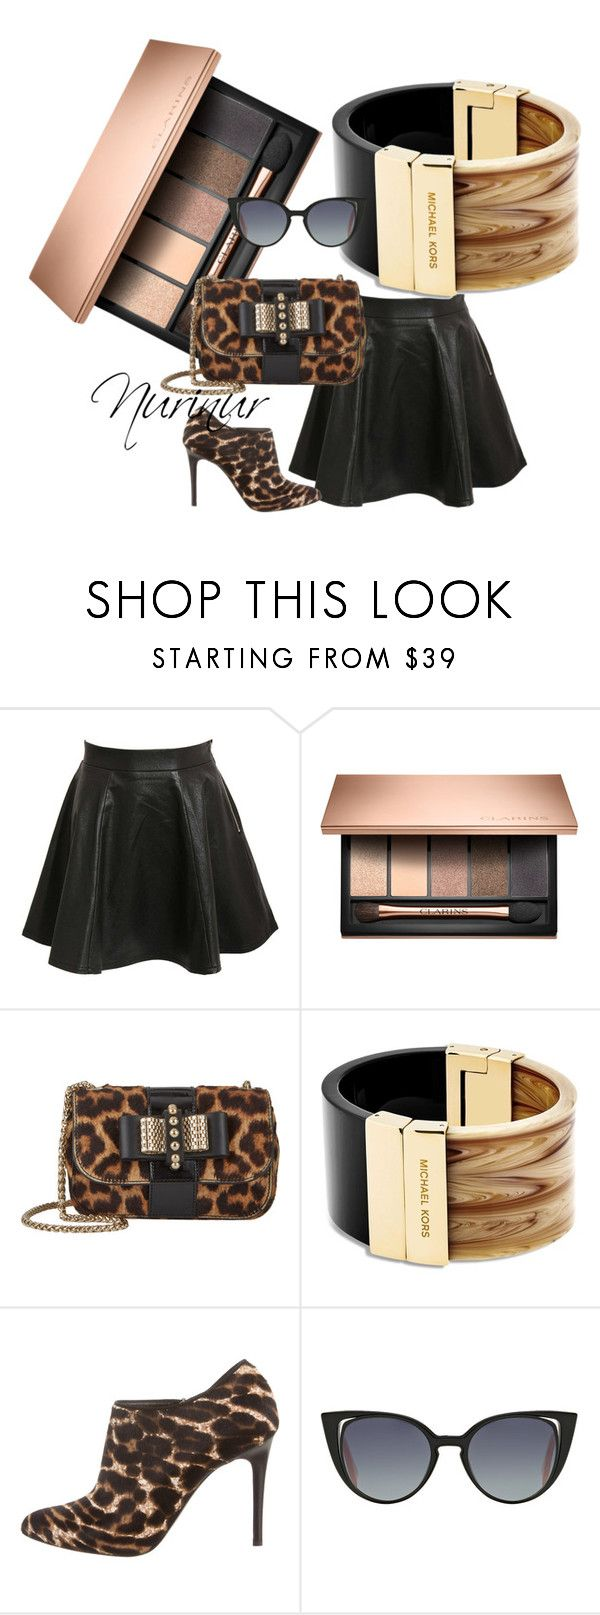 """Exception"" by nurinur ❤ liked on Polyvore featuring Pilot, Christian Louboutin, Michael Kors, Lanvin and Fendi"